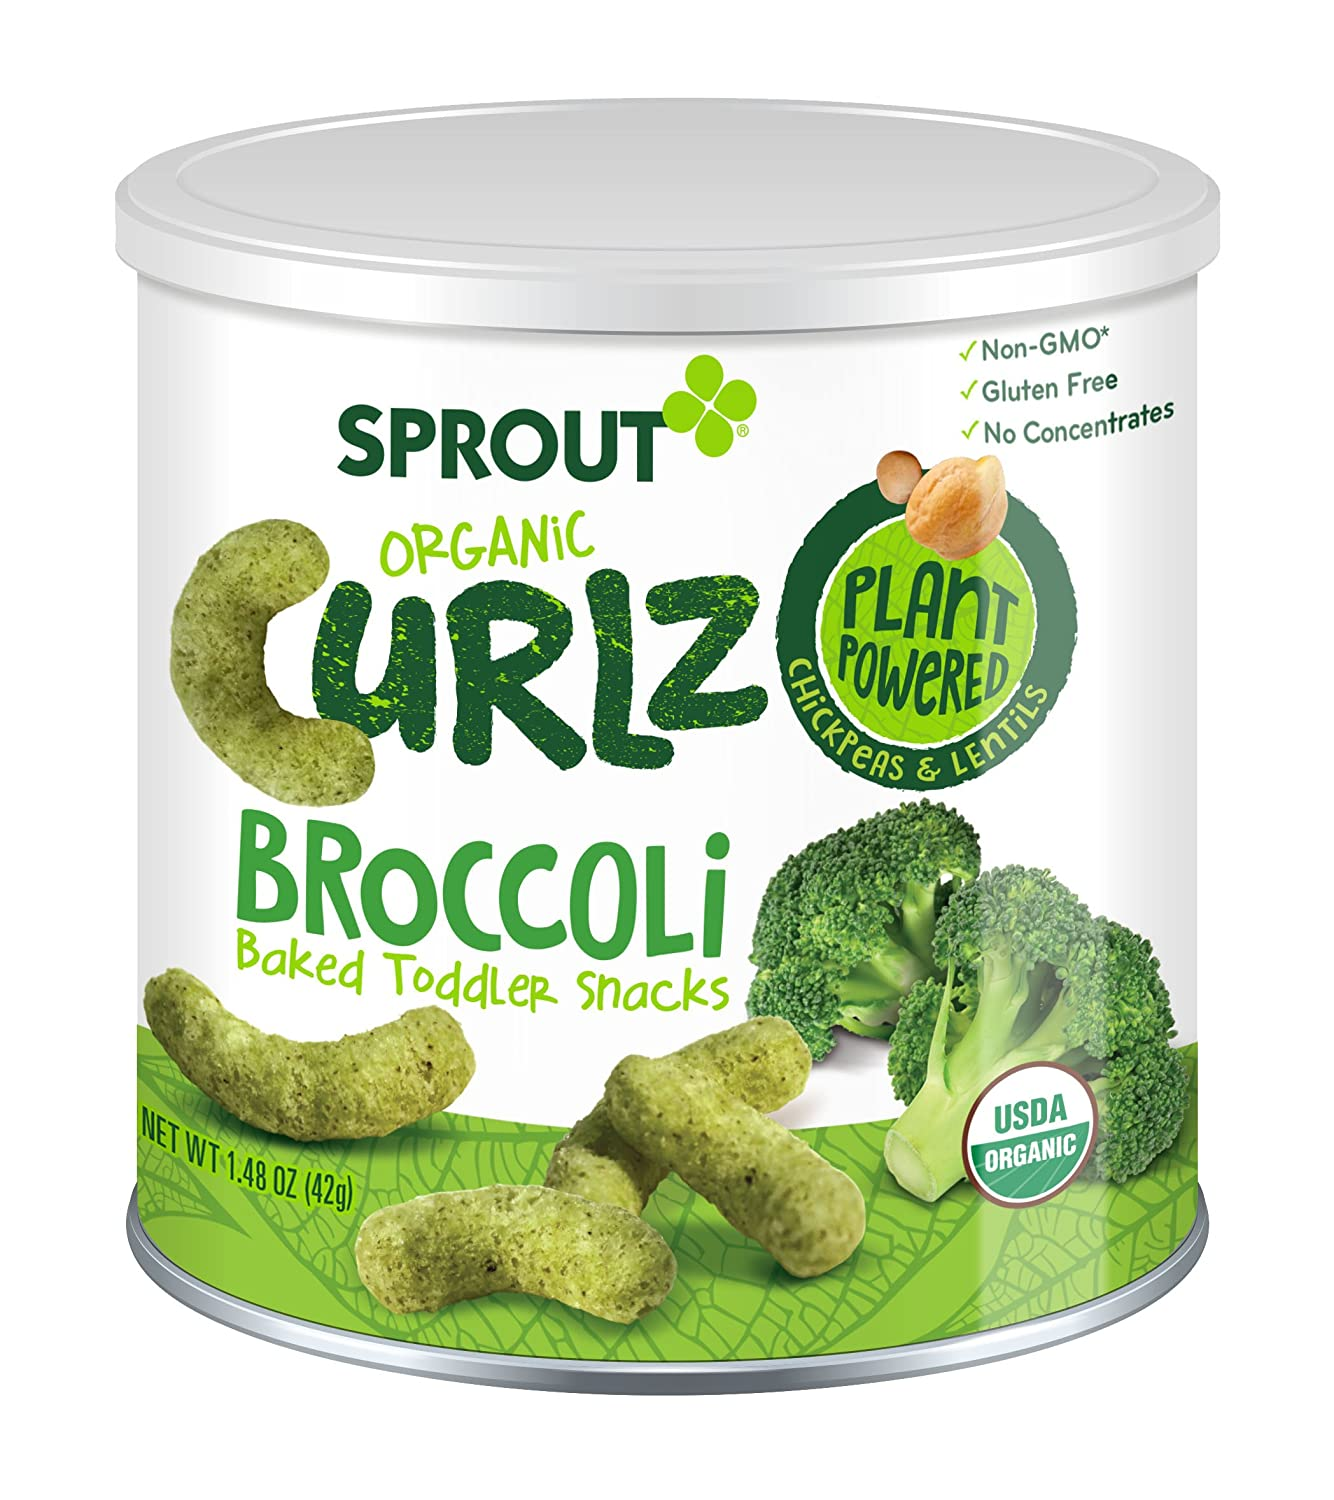 Sprout Organic Baby Food, Sprout Curlz Organic Toddler Snacks, Broccoli, 1.48 Ounce Canister